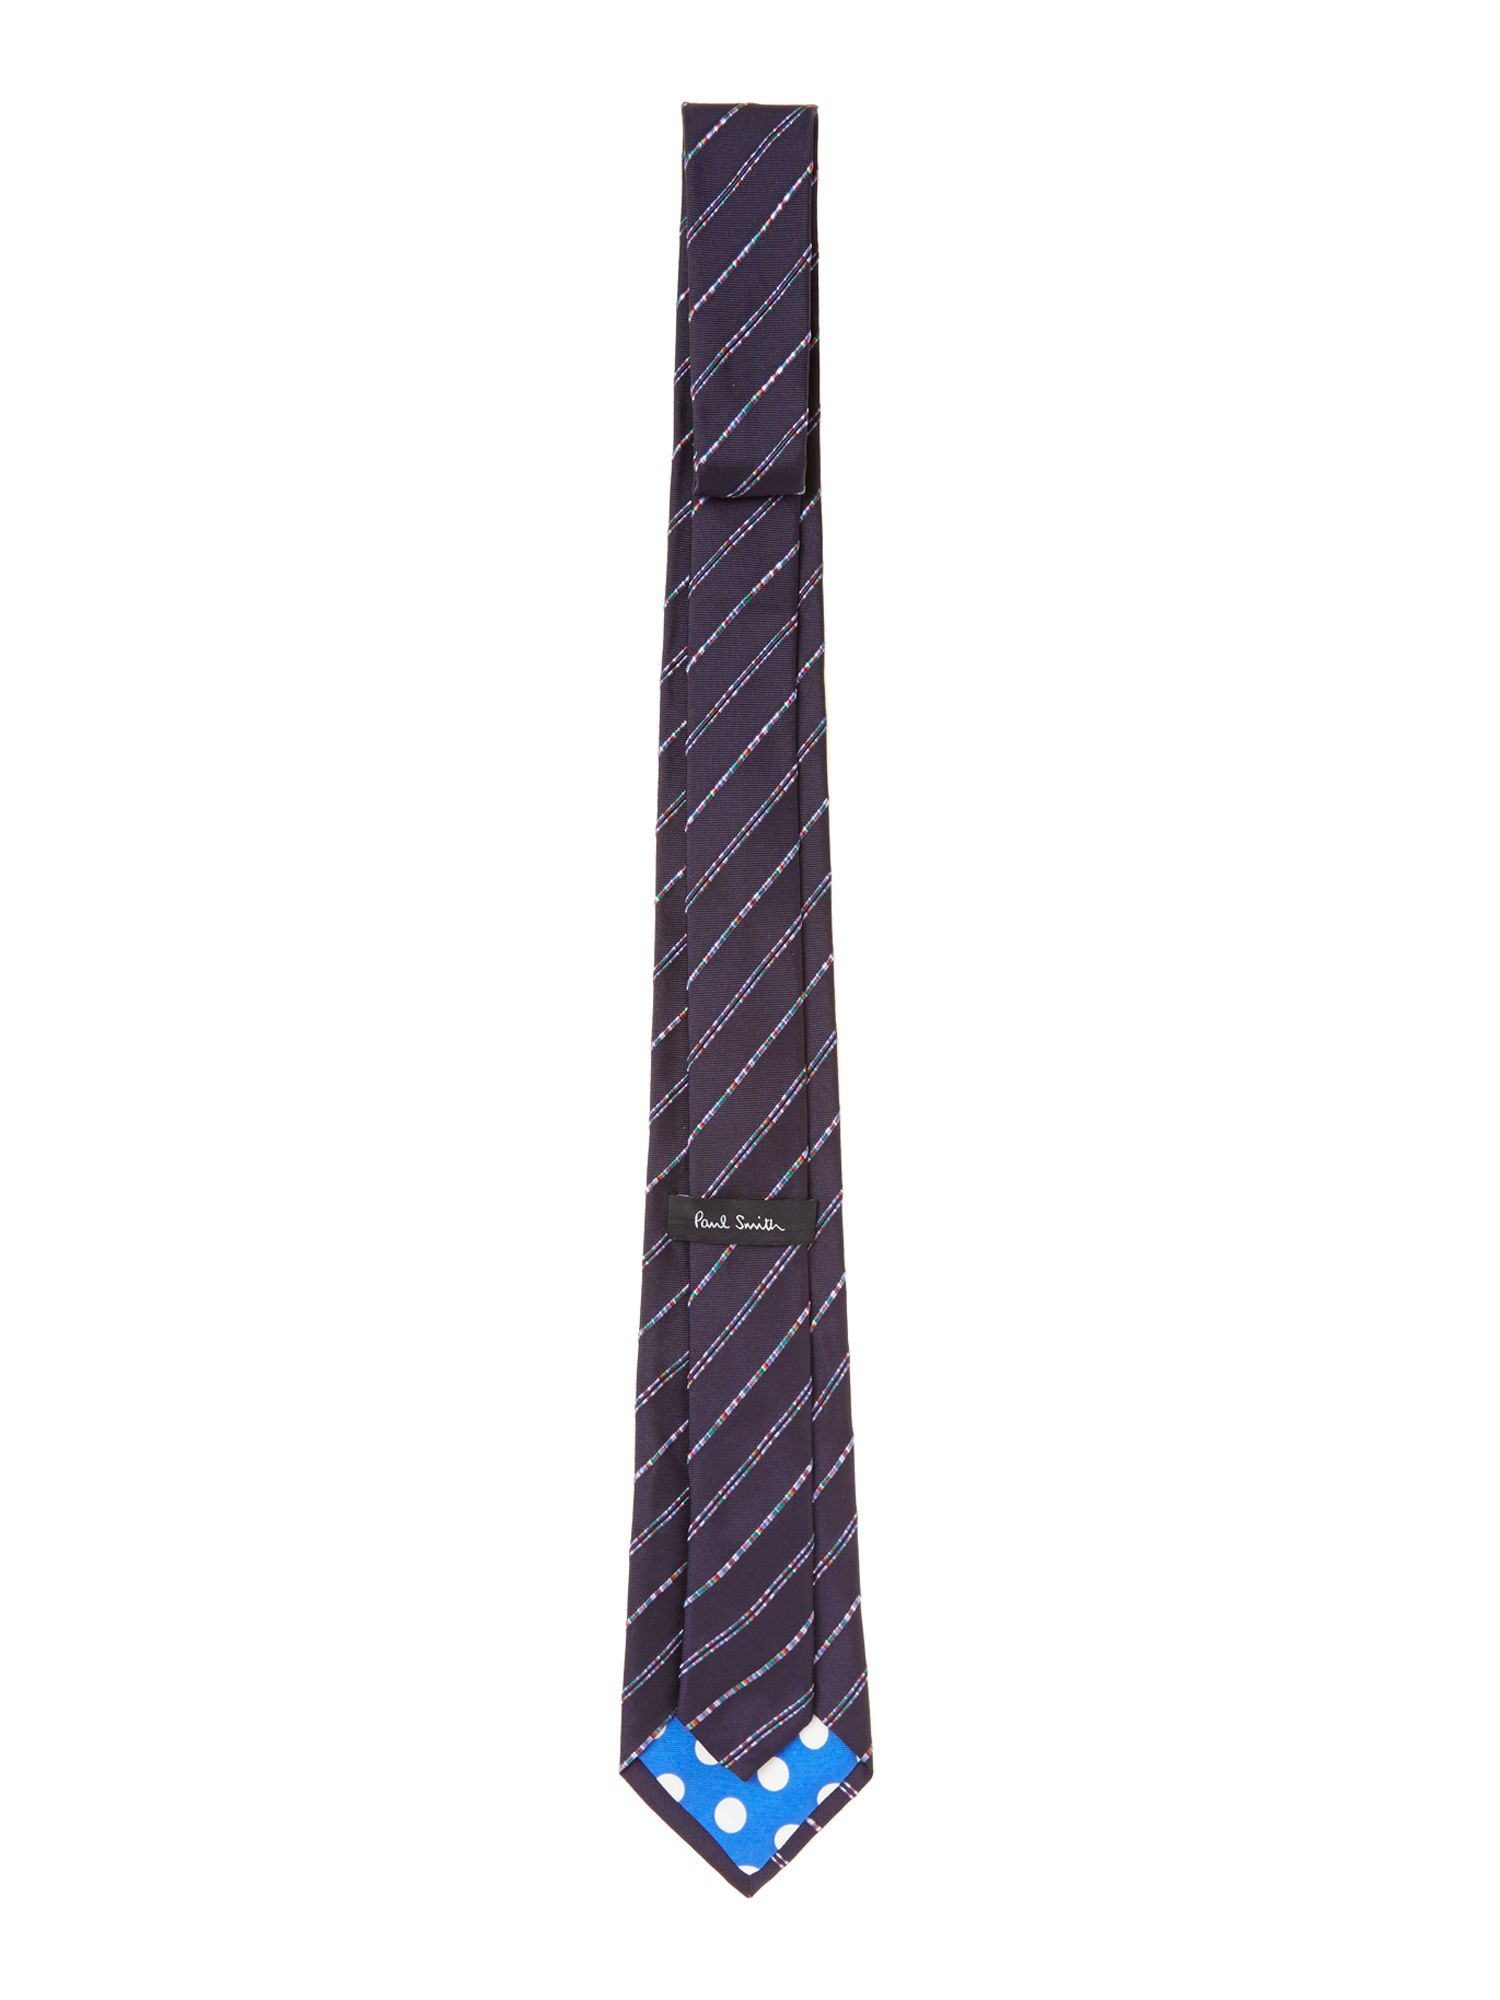 Regular Paul Smith stripe tie